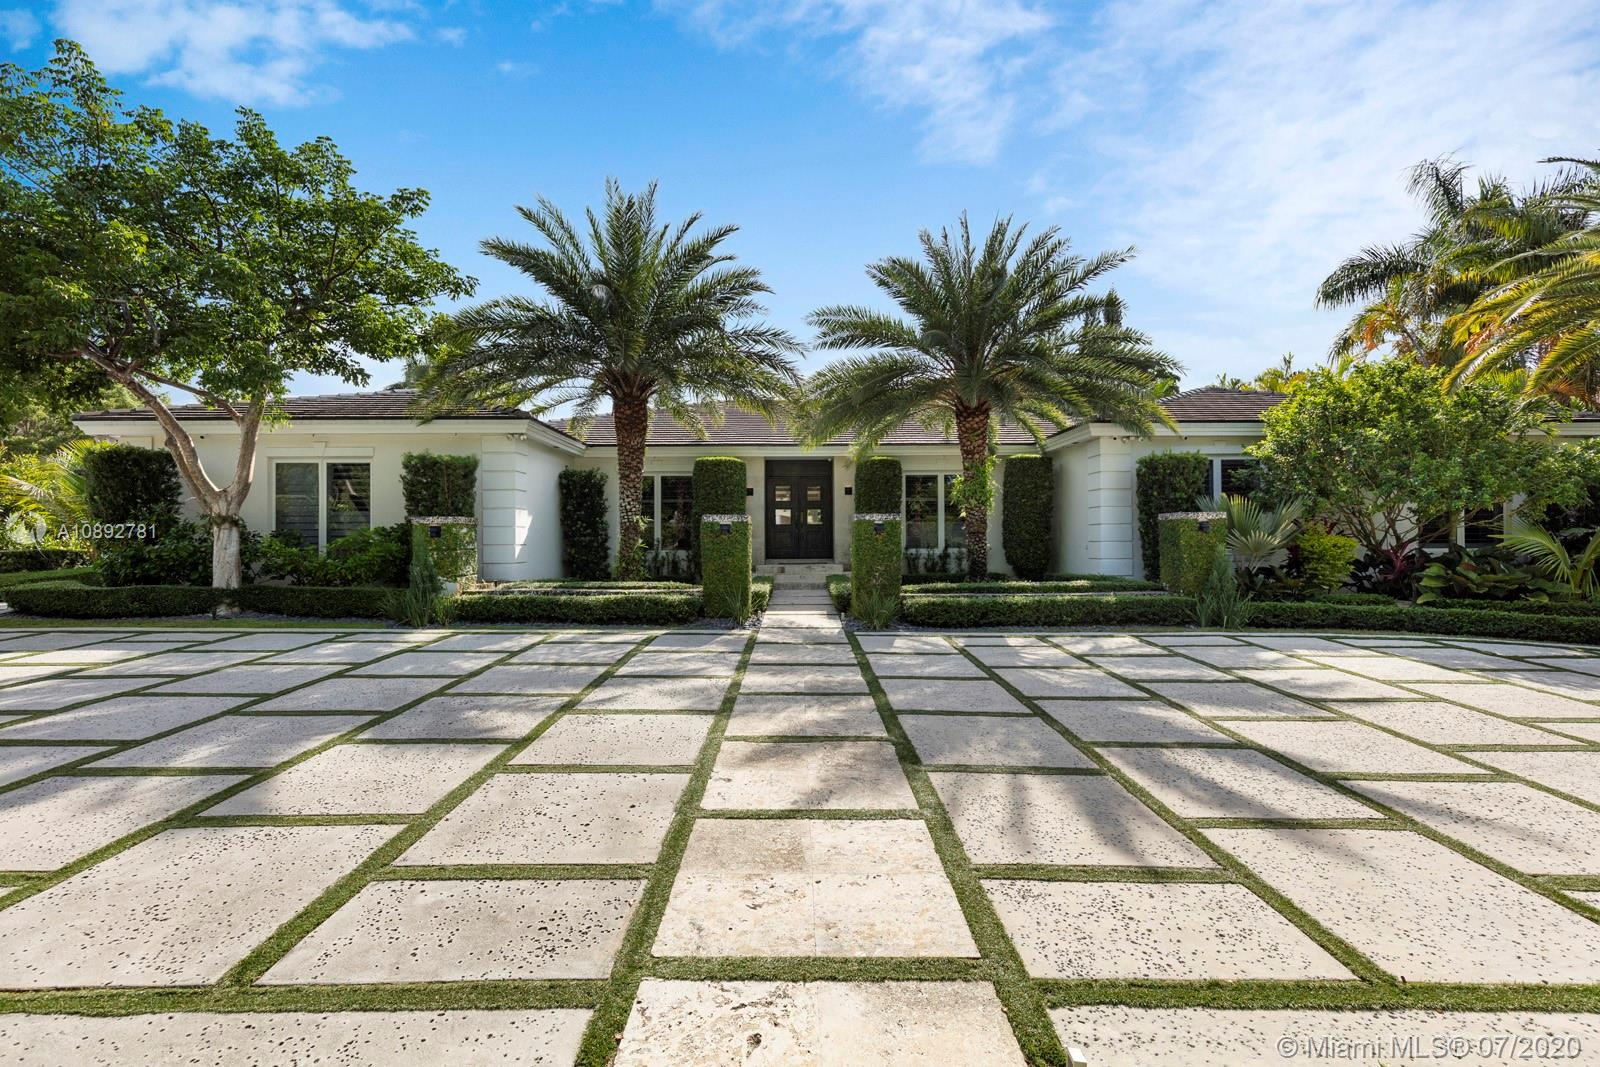 Details for 8200 Los Pinos Blvd, Coral Gables, FL 33143